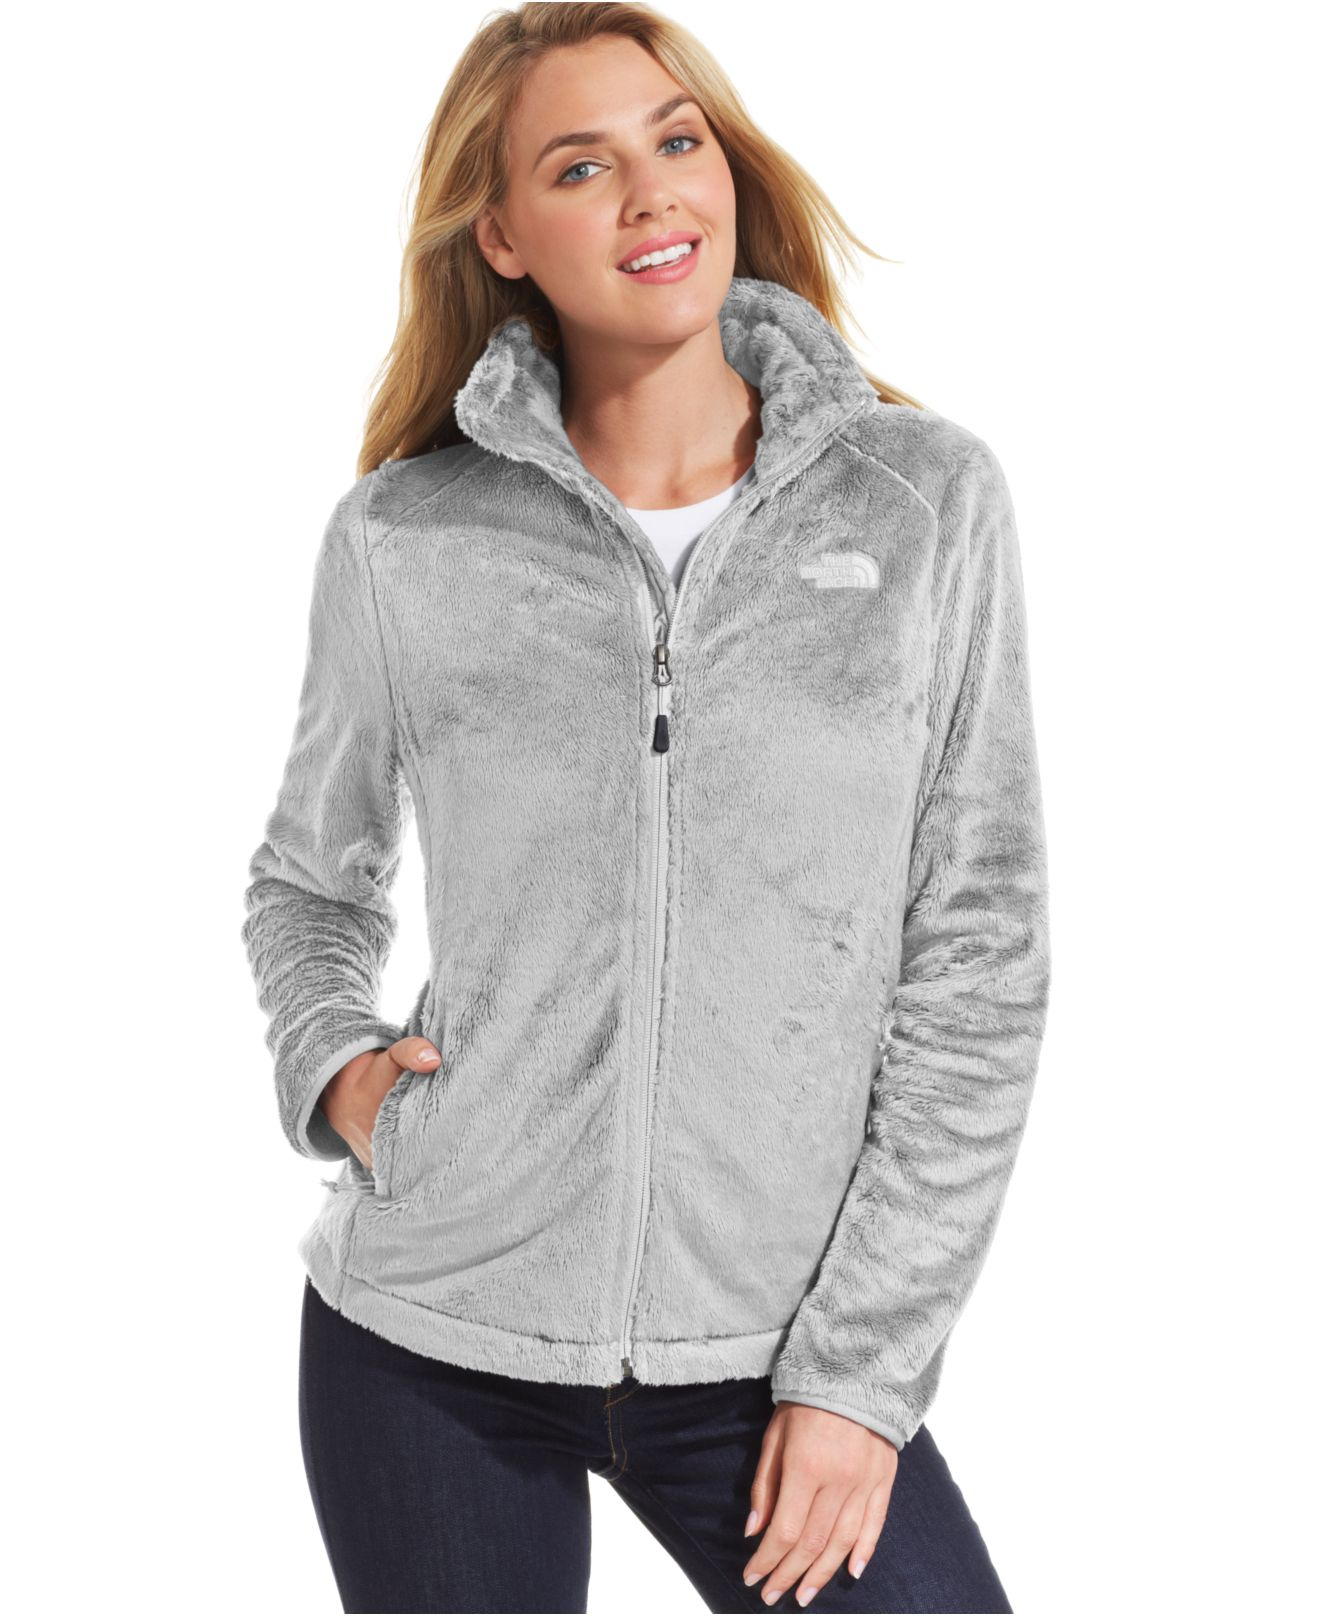 The north face osito jacket with hood